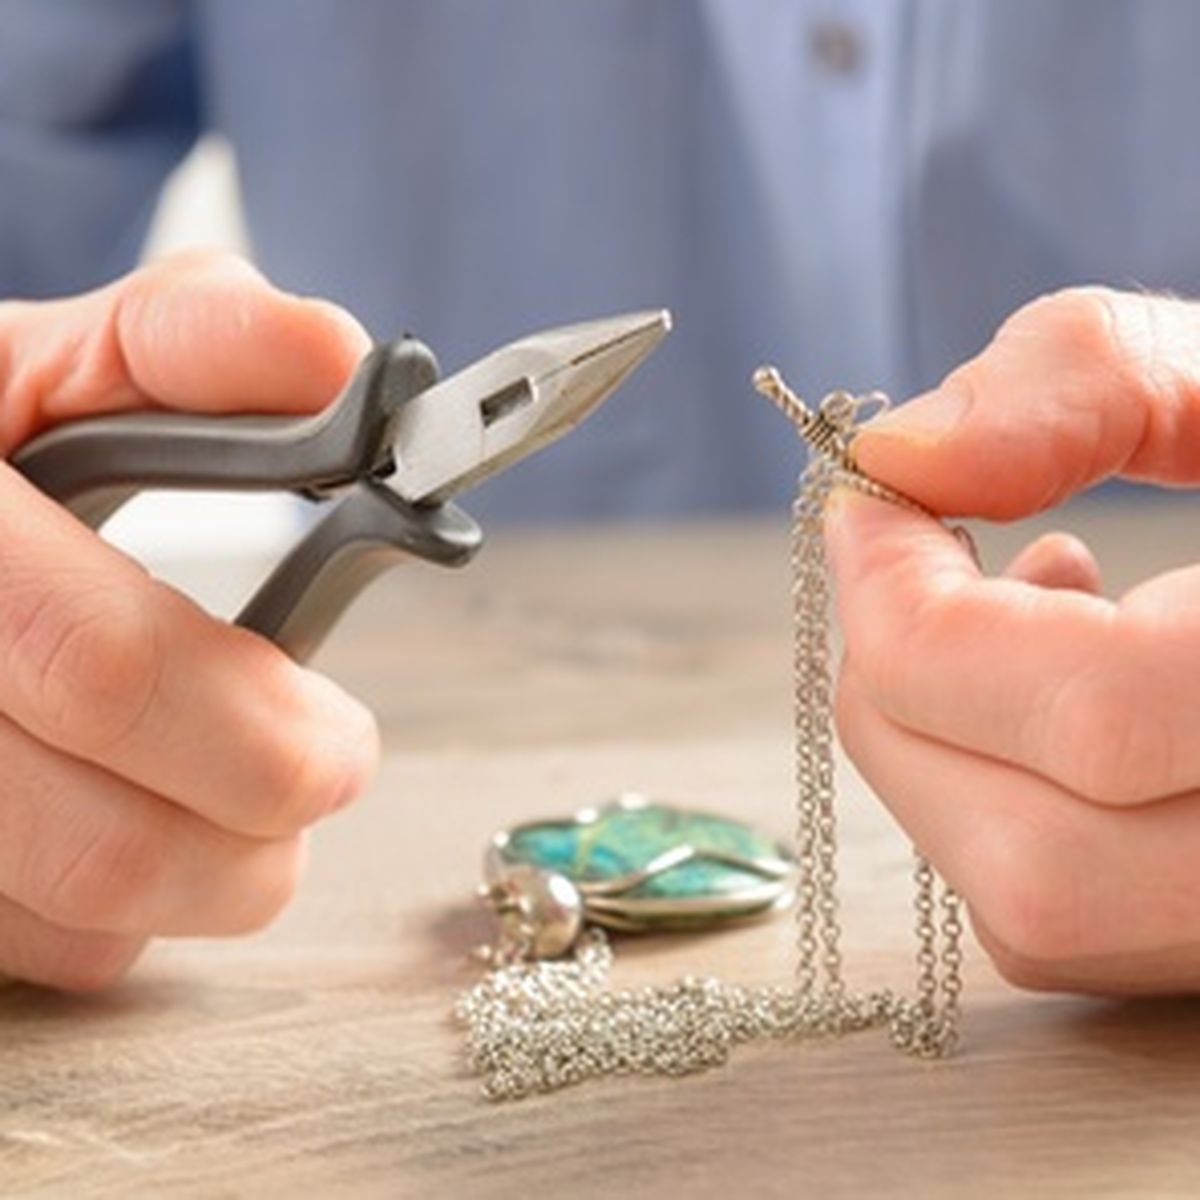 Jewelry Care, Repair and Maintenance at Village Watch Center